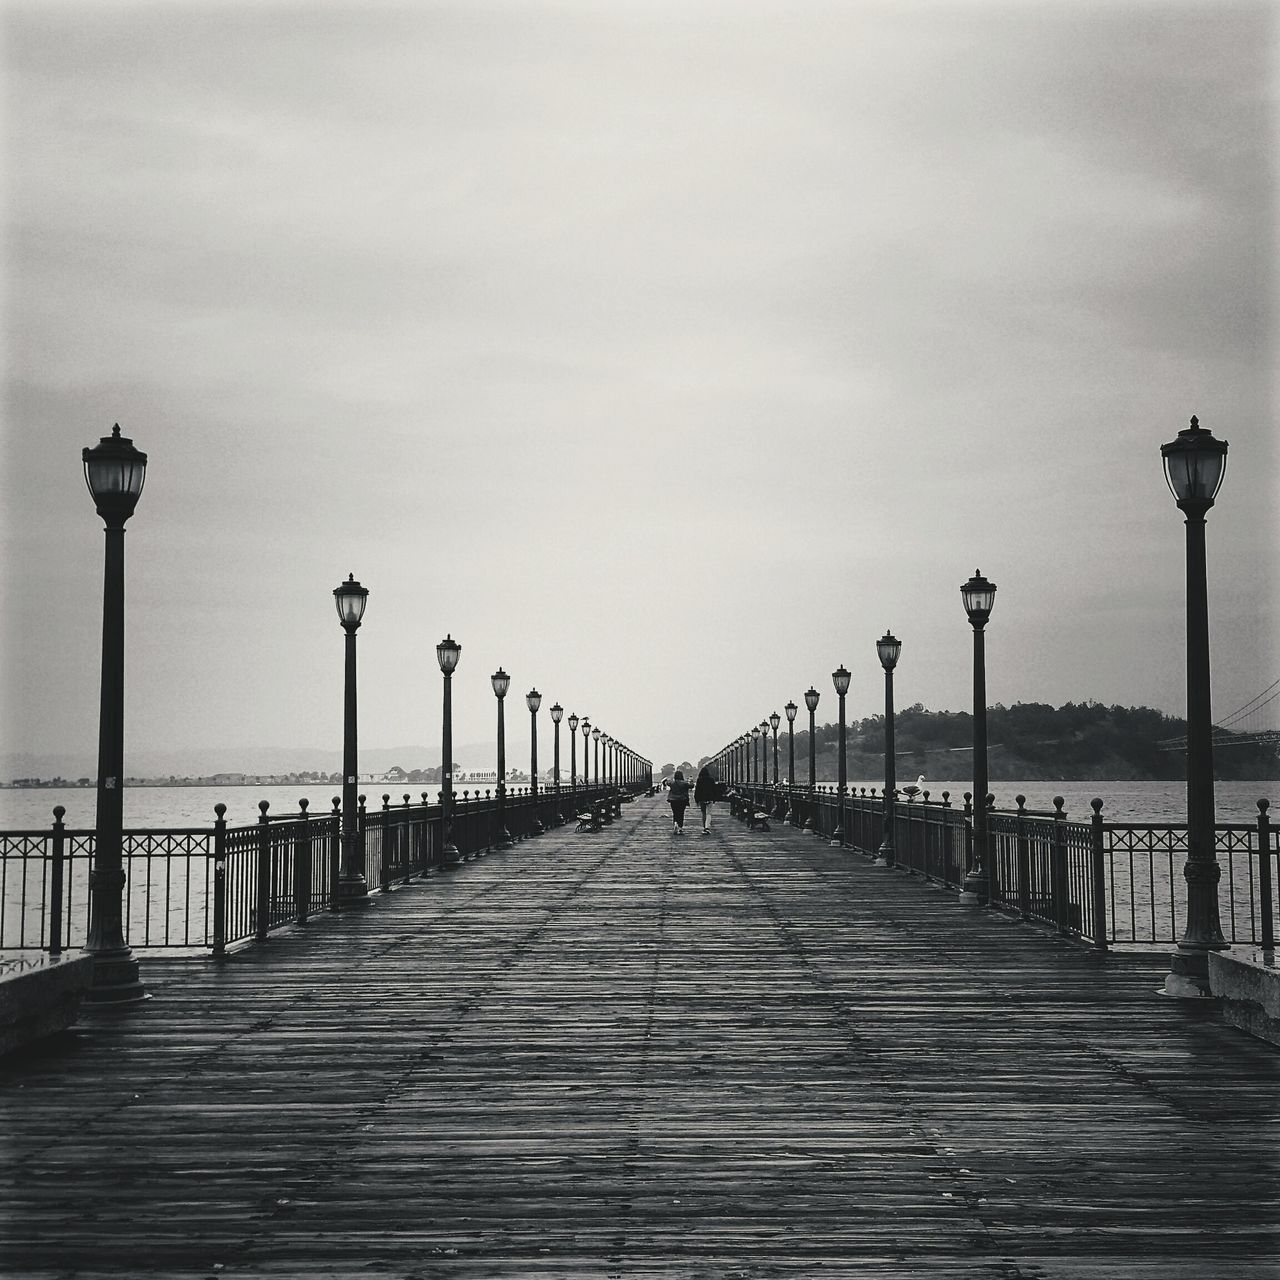 Outdoors Water Blackandwhite Photography Black And White Photography SanFranciscoBay Pier Woodpier